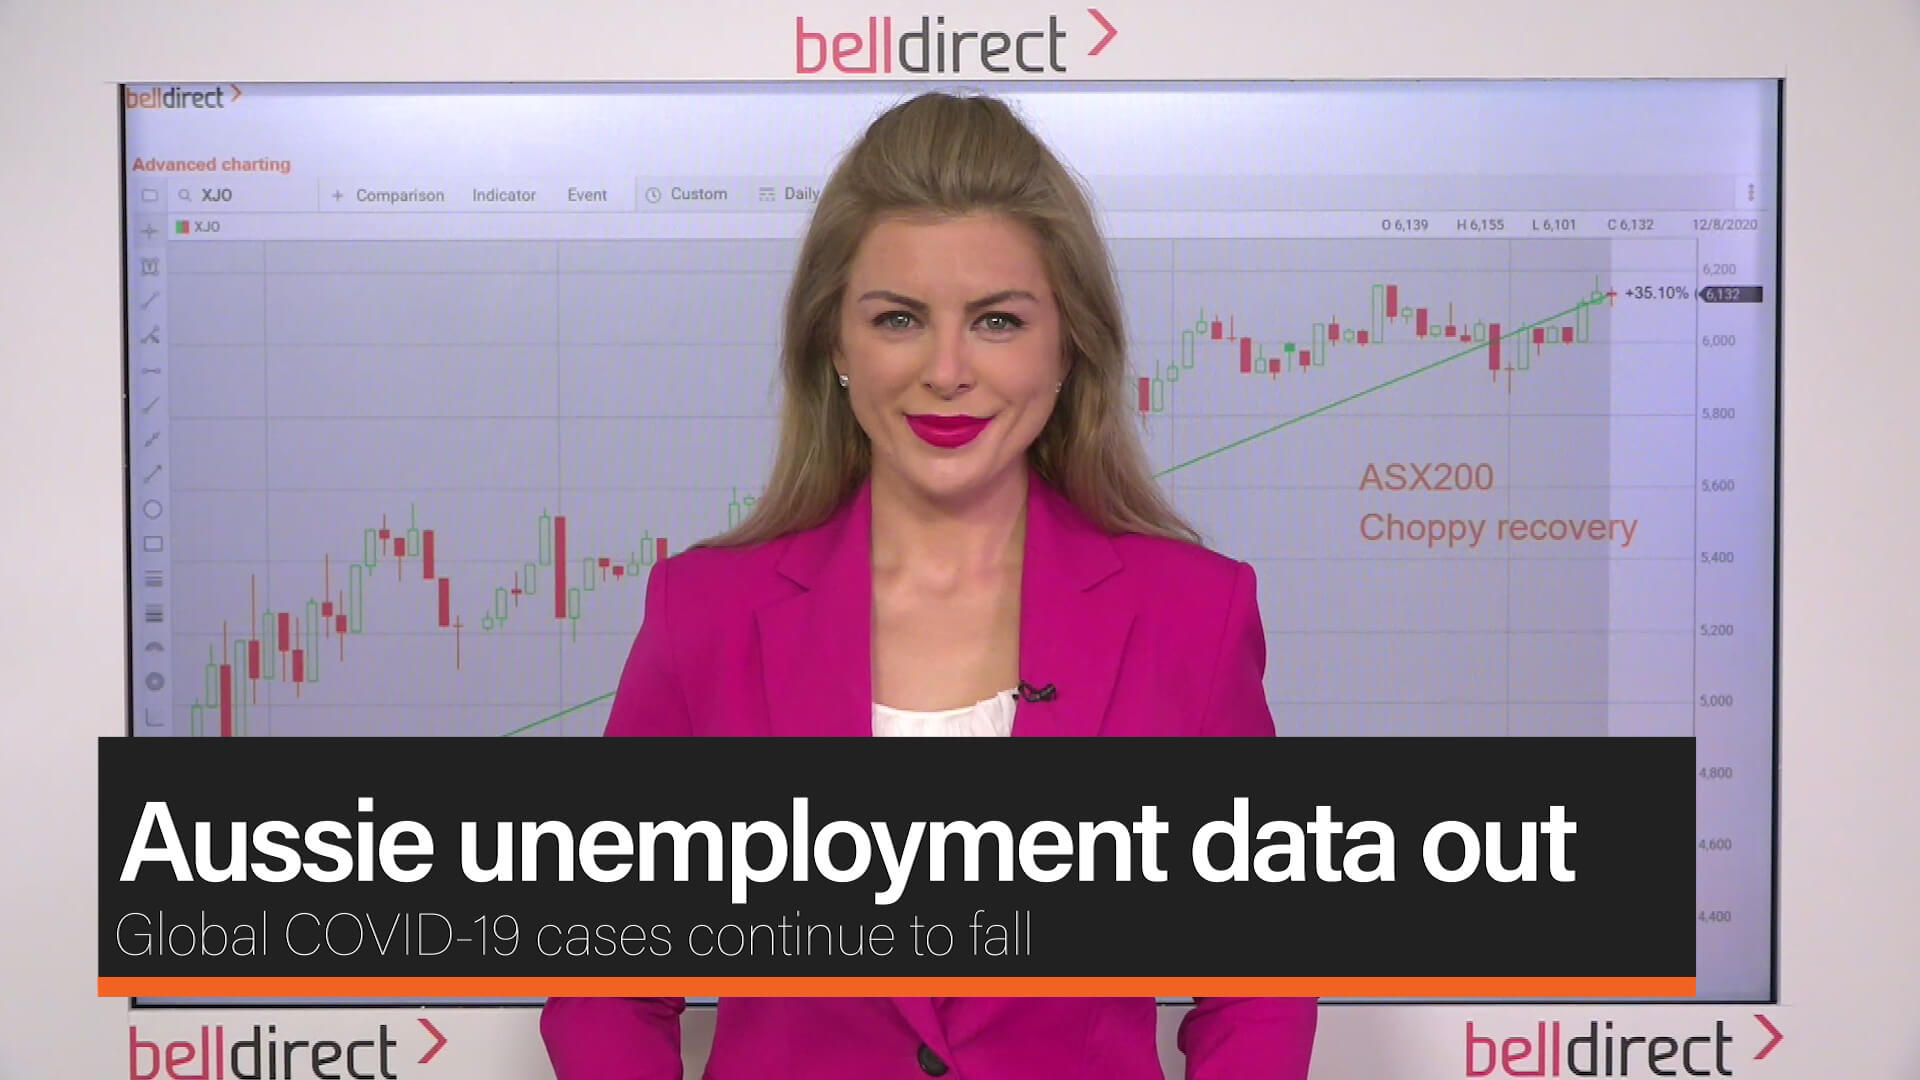 Aussie unemployment data out